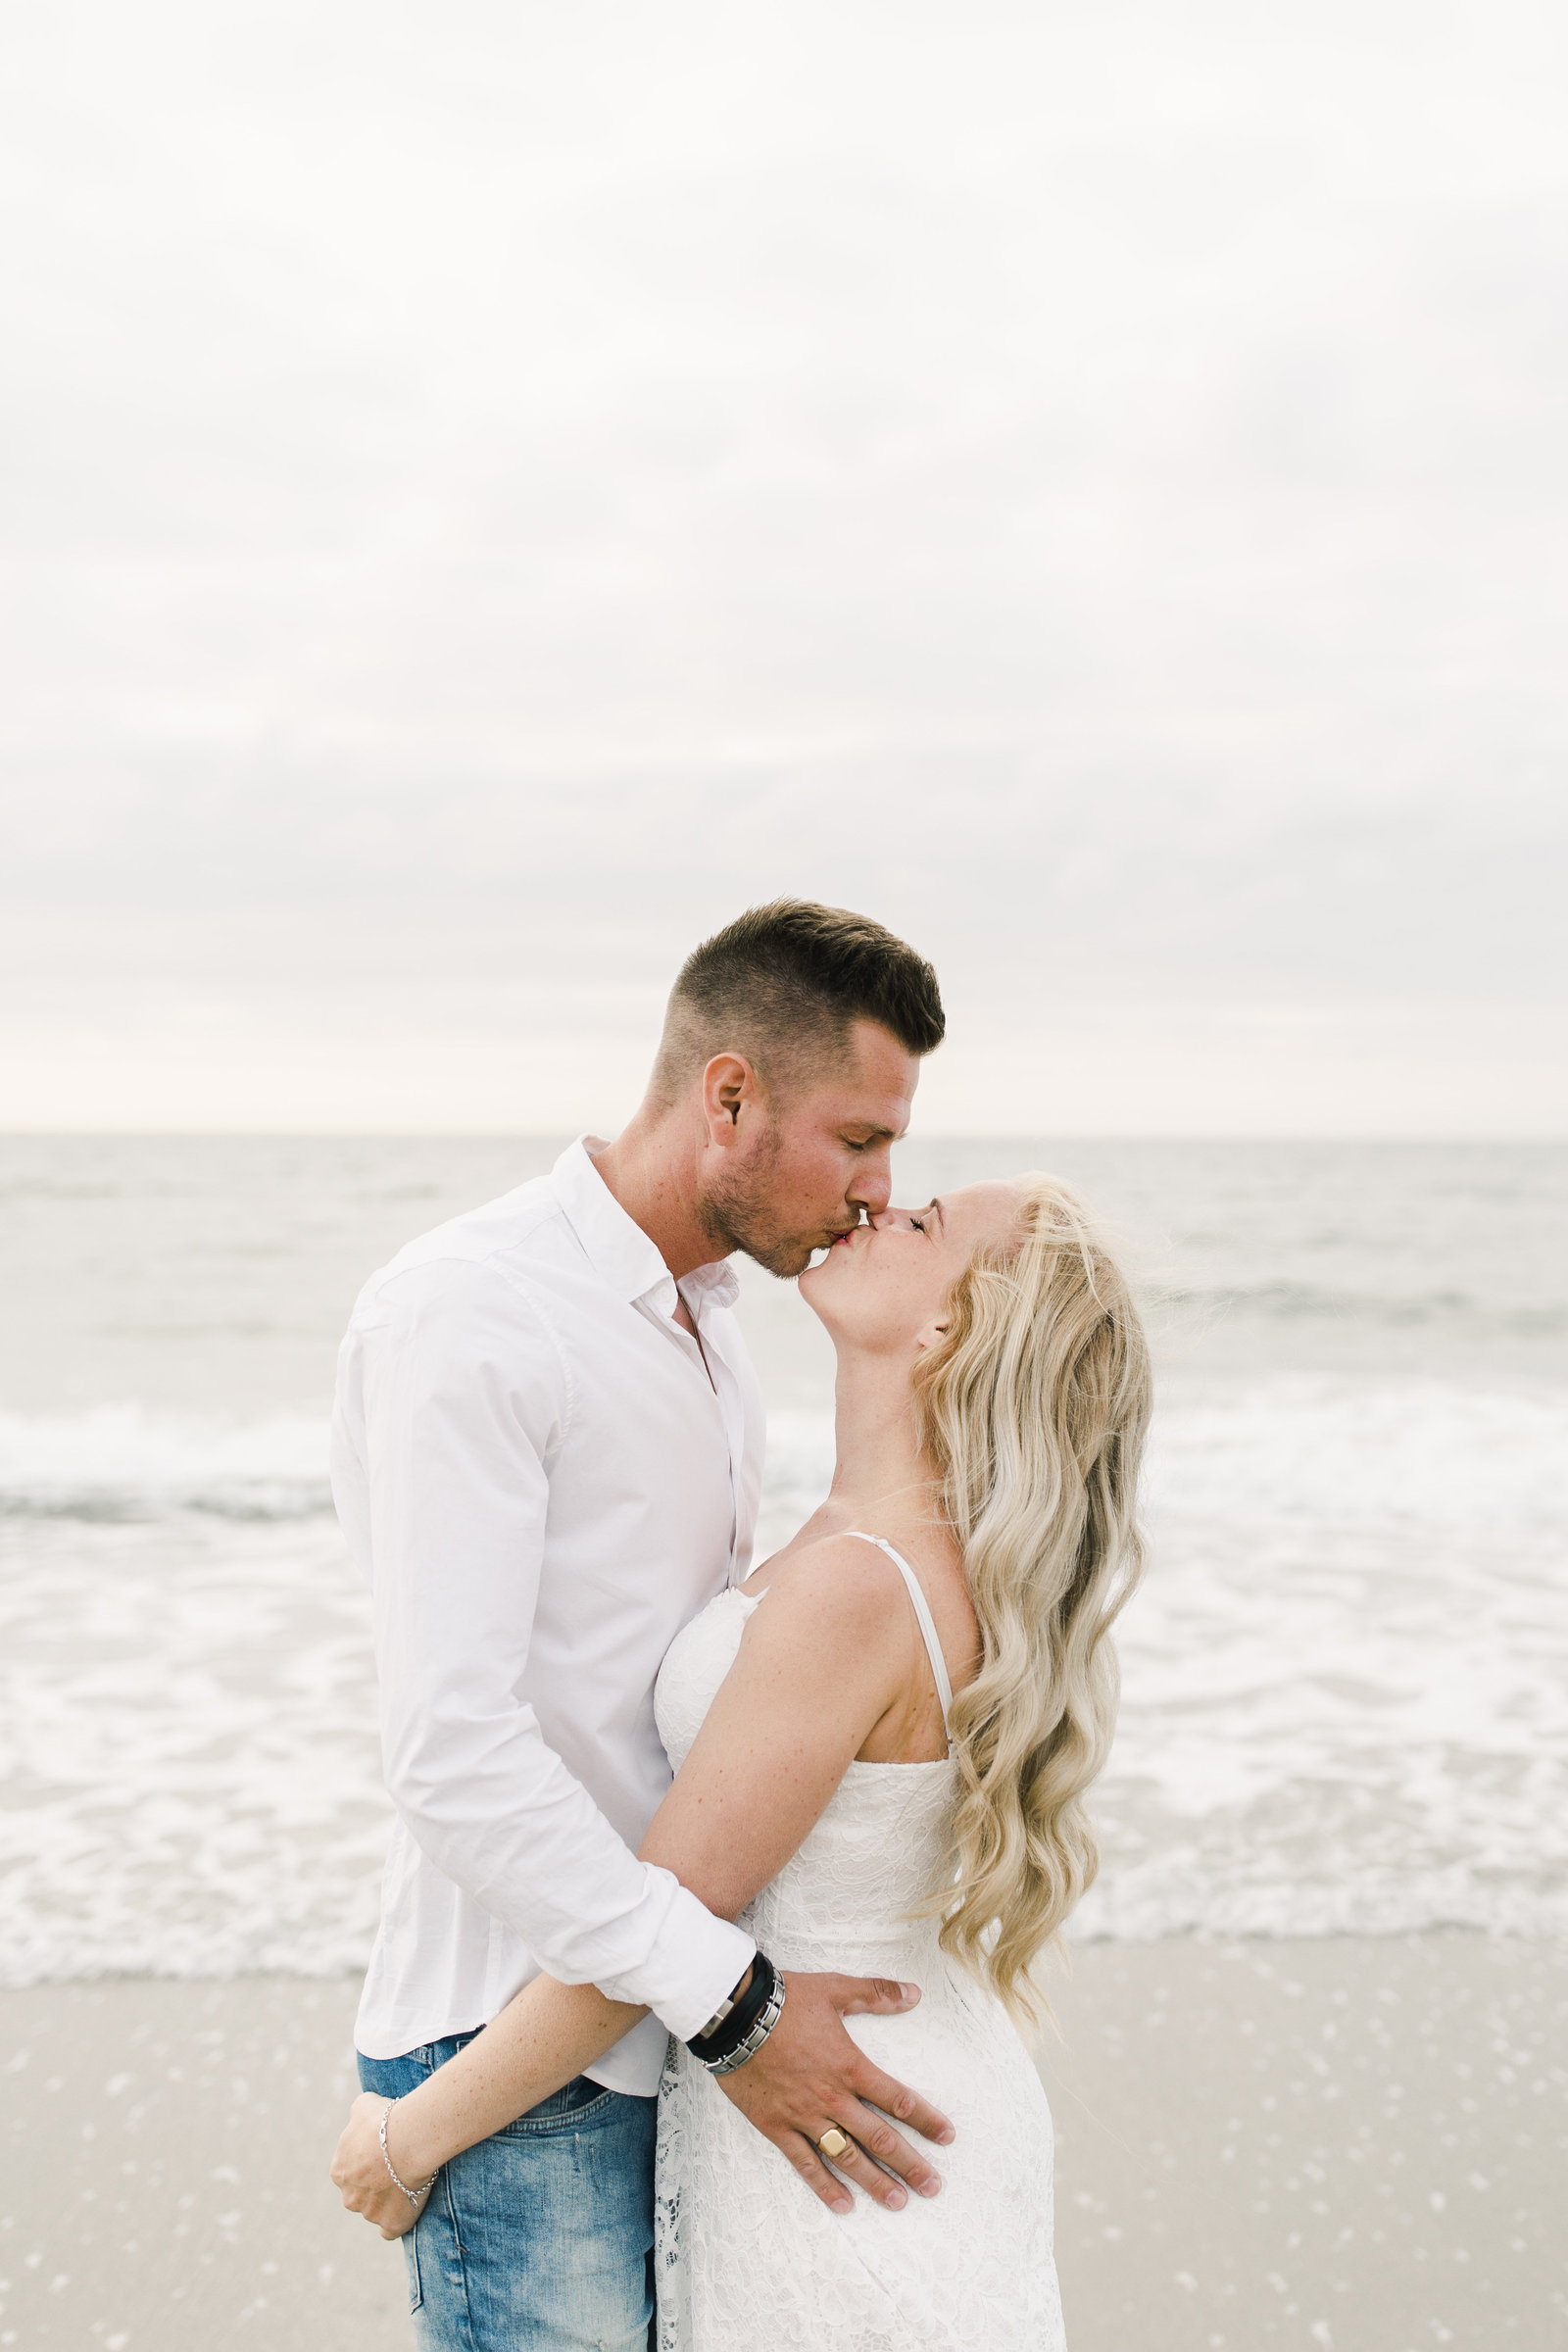 Shirley van der Schans - Shirley's Photography - loveshoot- strand-10